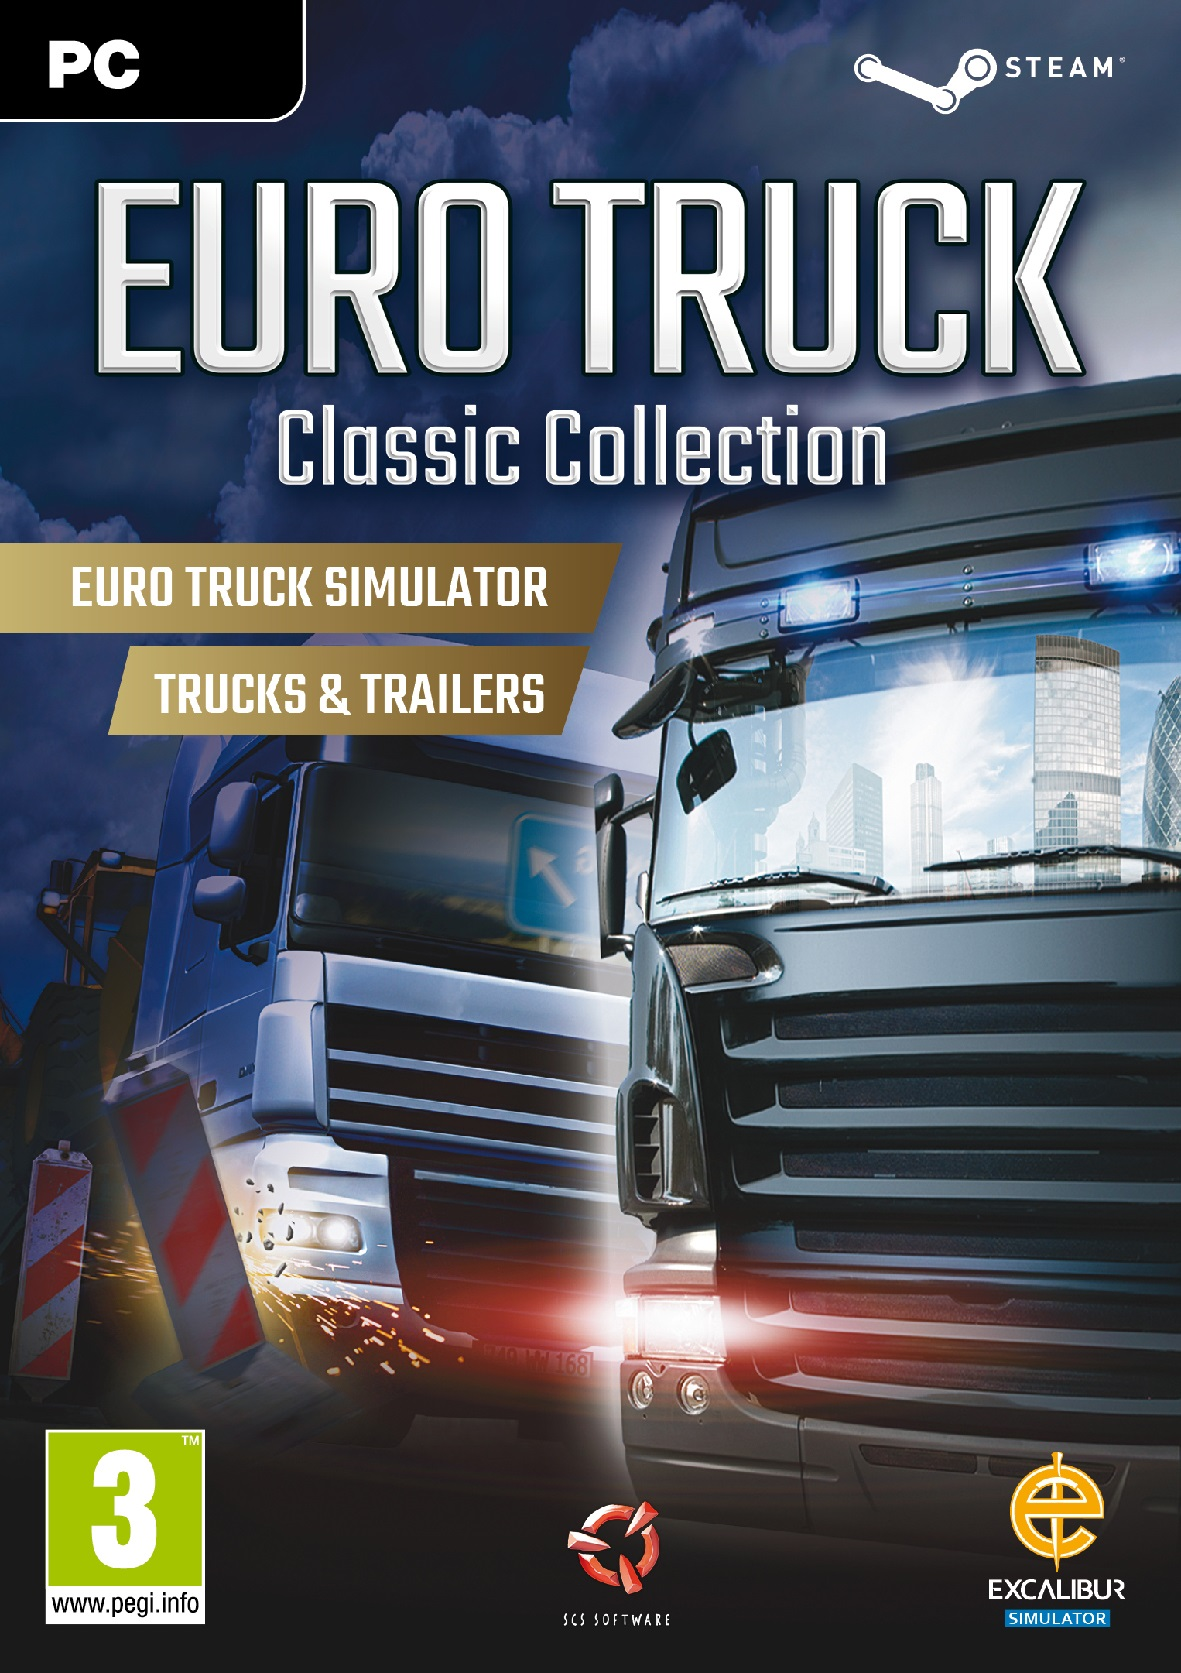 euro-truck-classic-collection.jpg